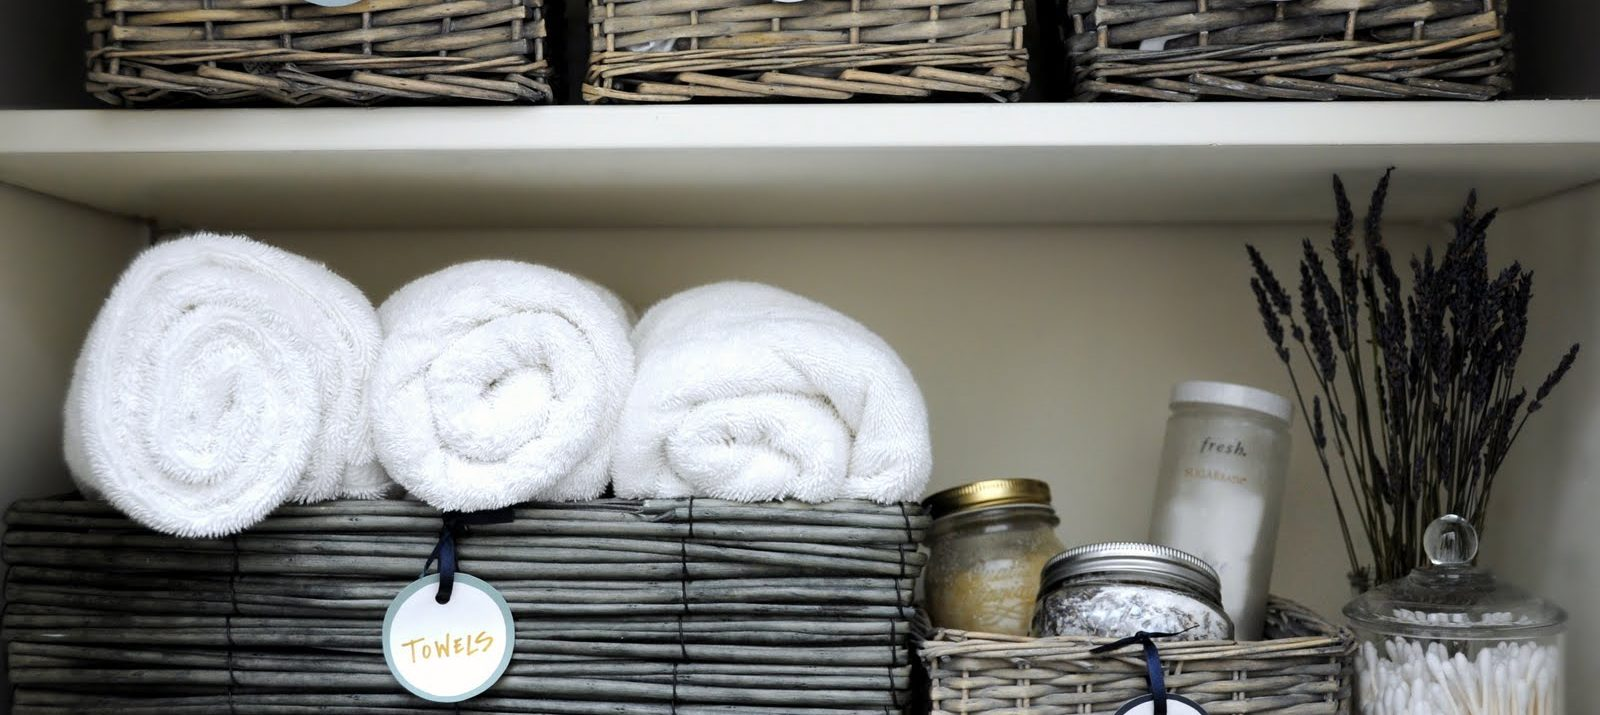 How To Organize Linen Closet: Declutter, Sort By Category, And Store Things  In